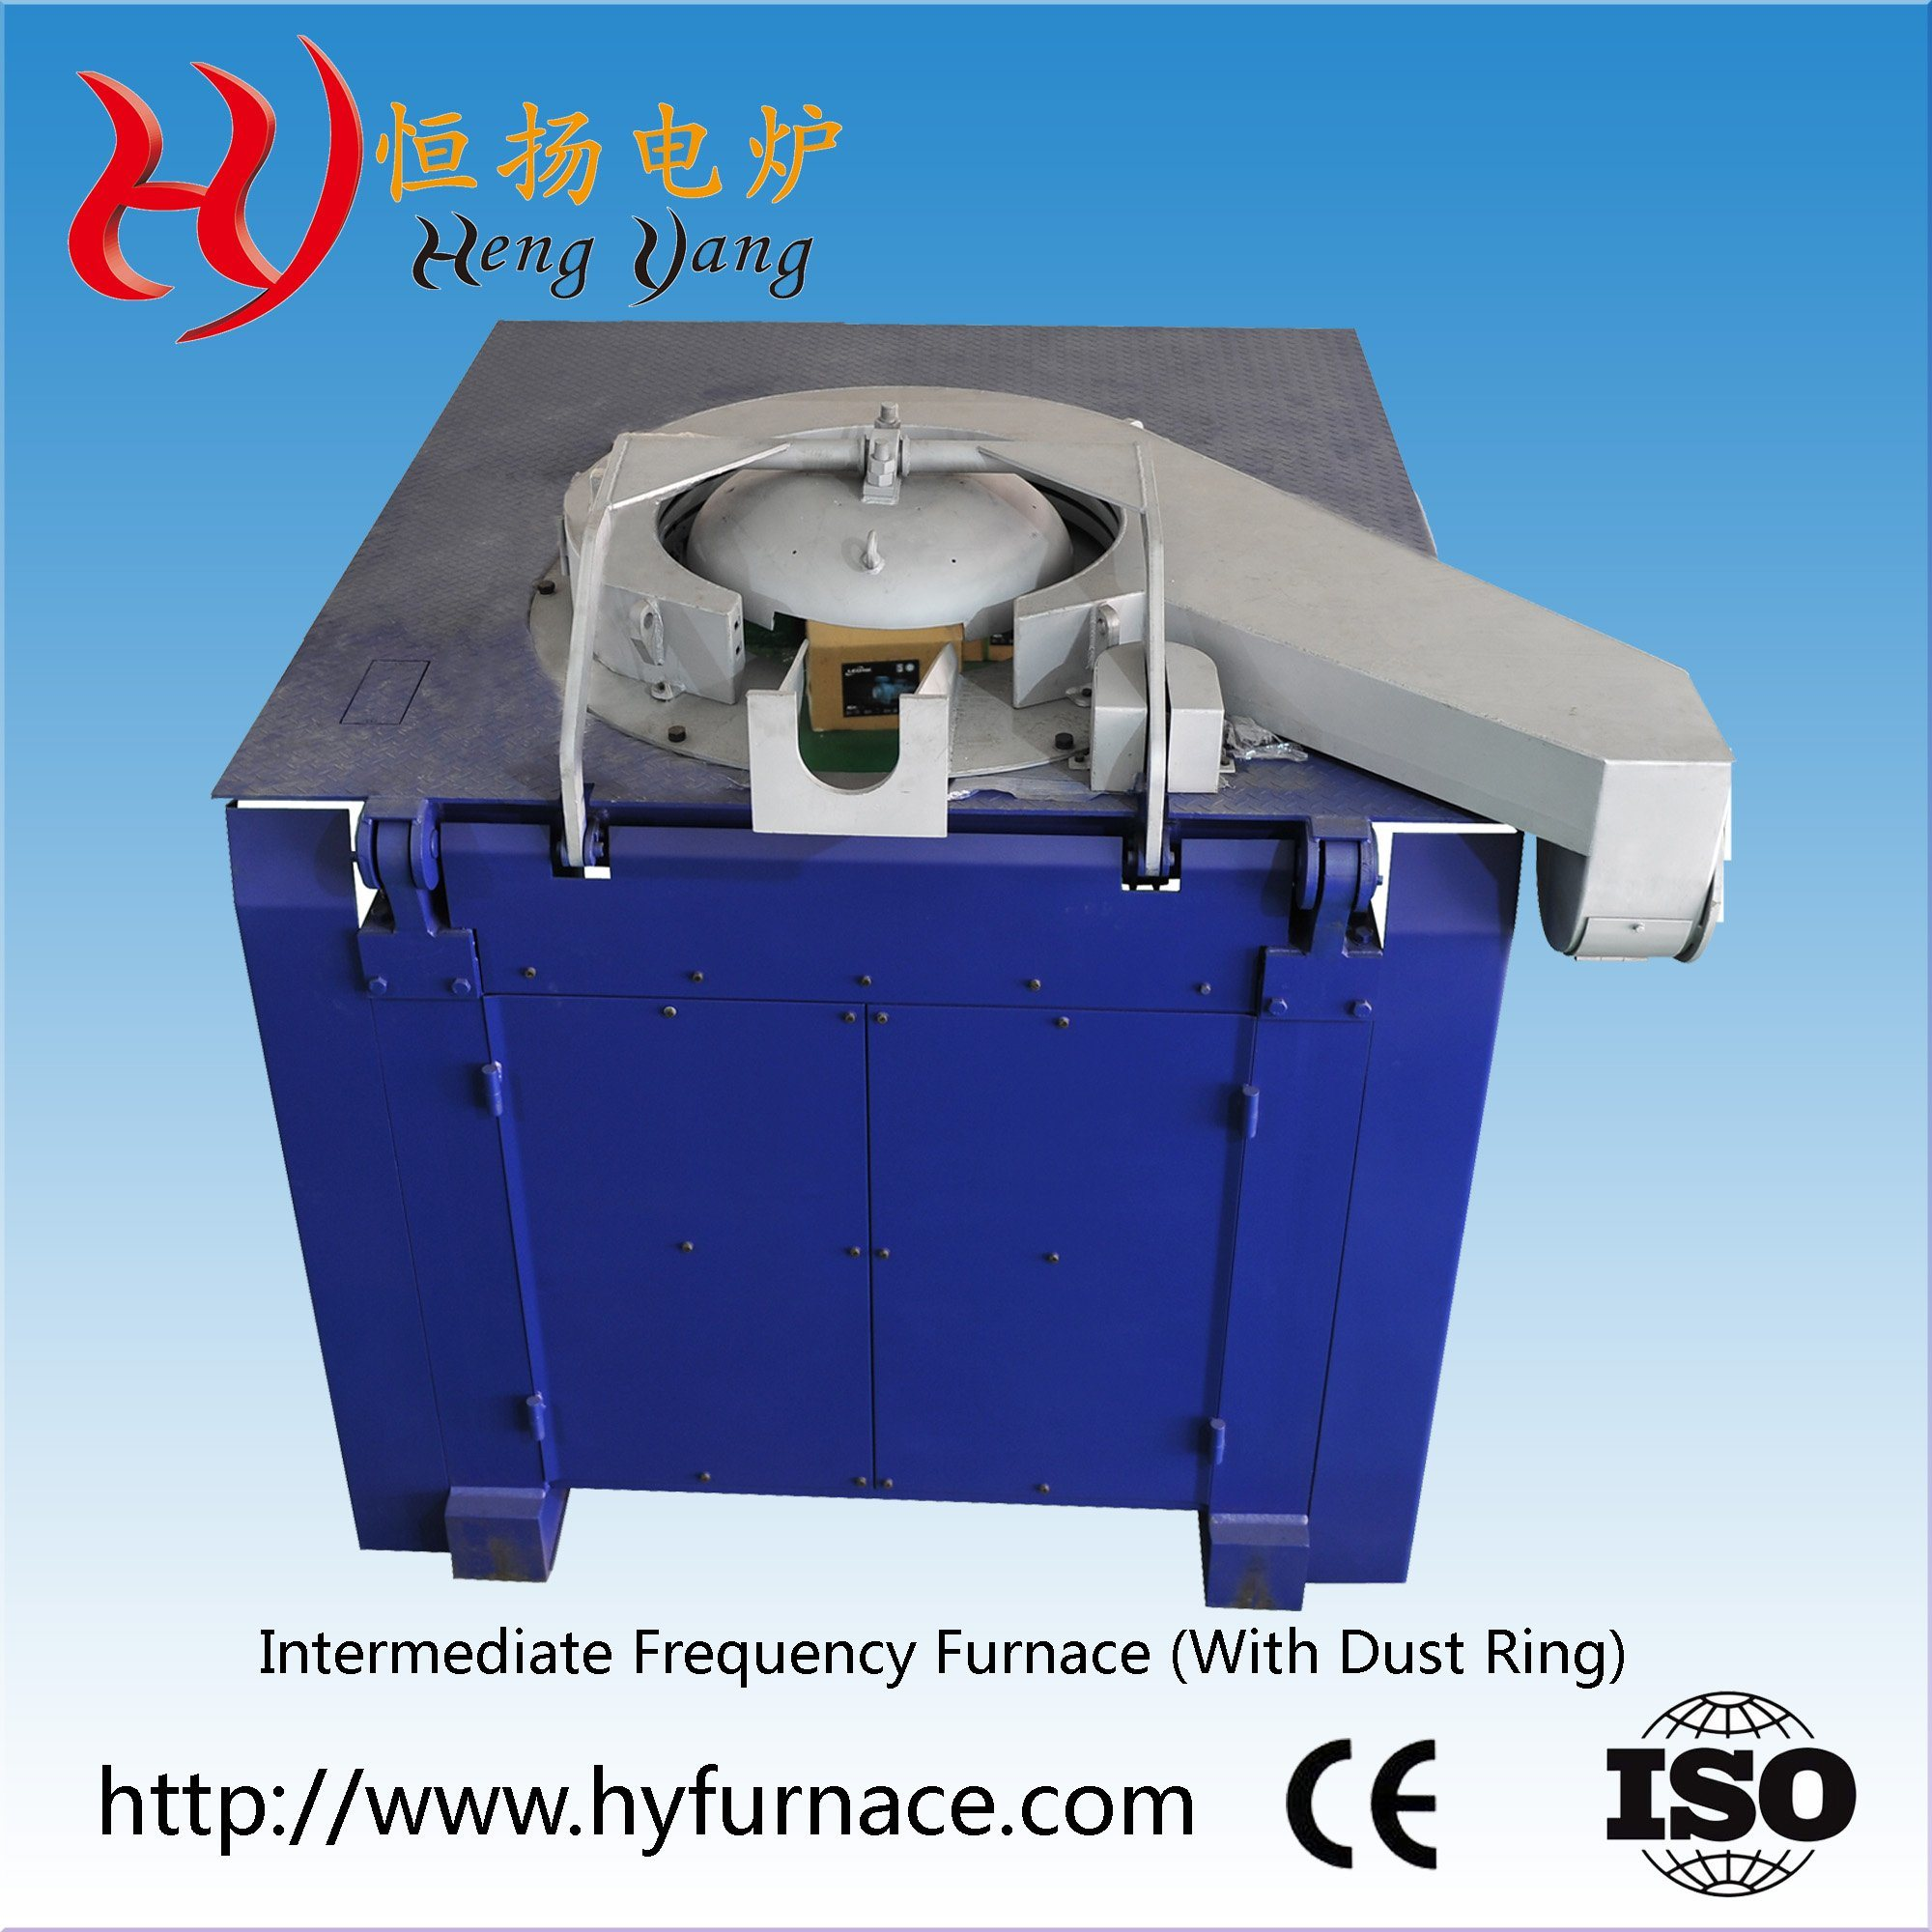 Pollution-Free Energy Saving Melting Furnace